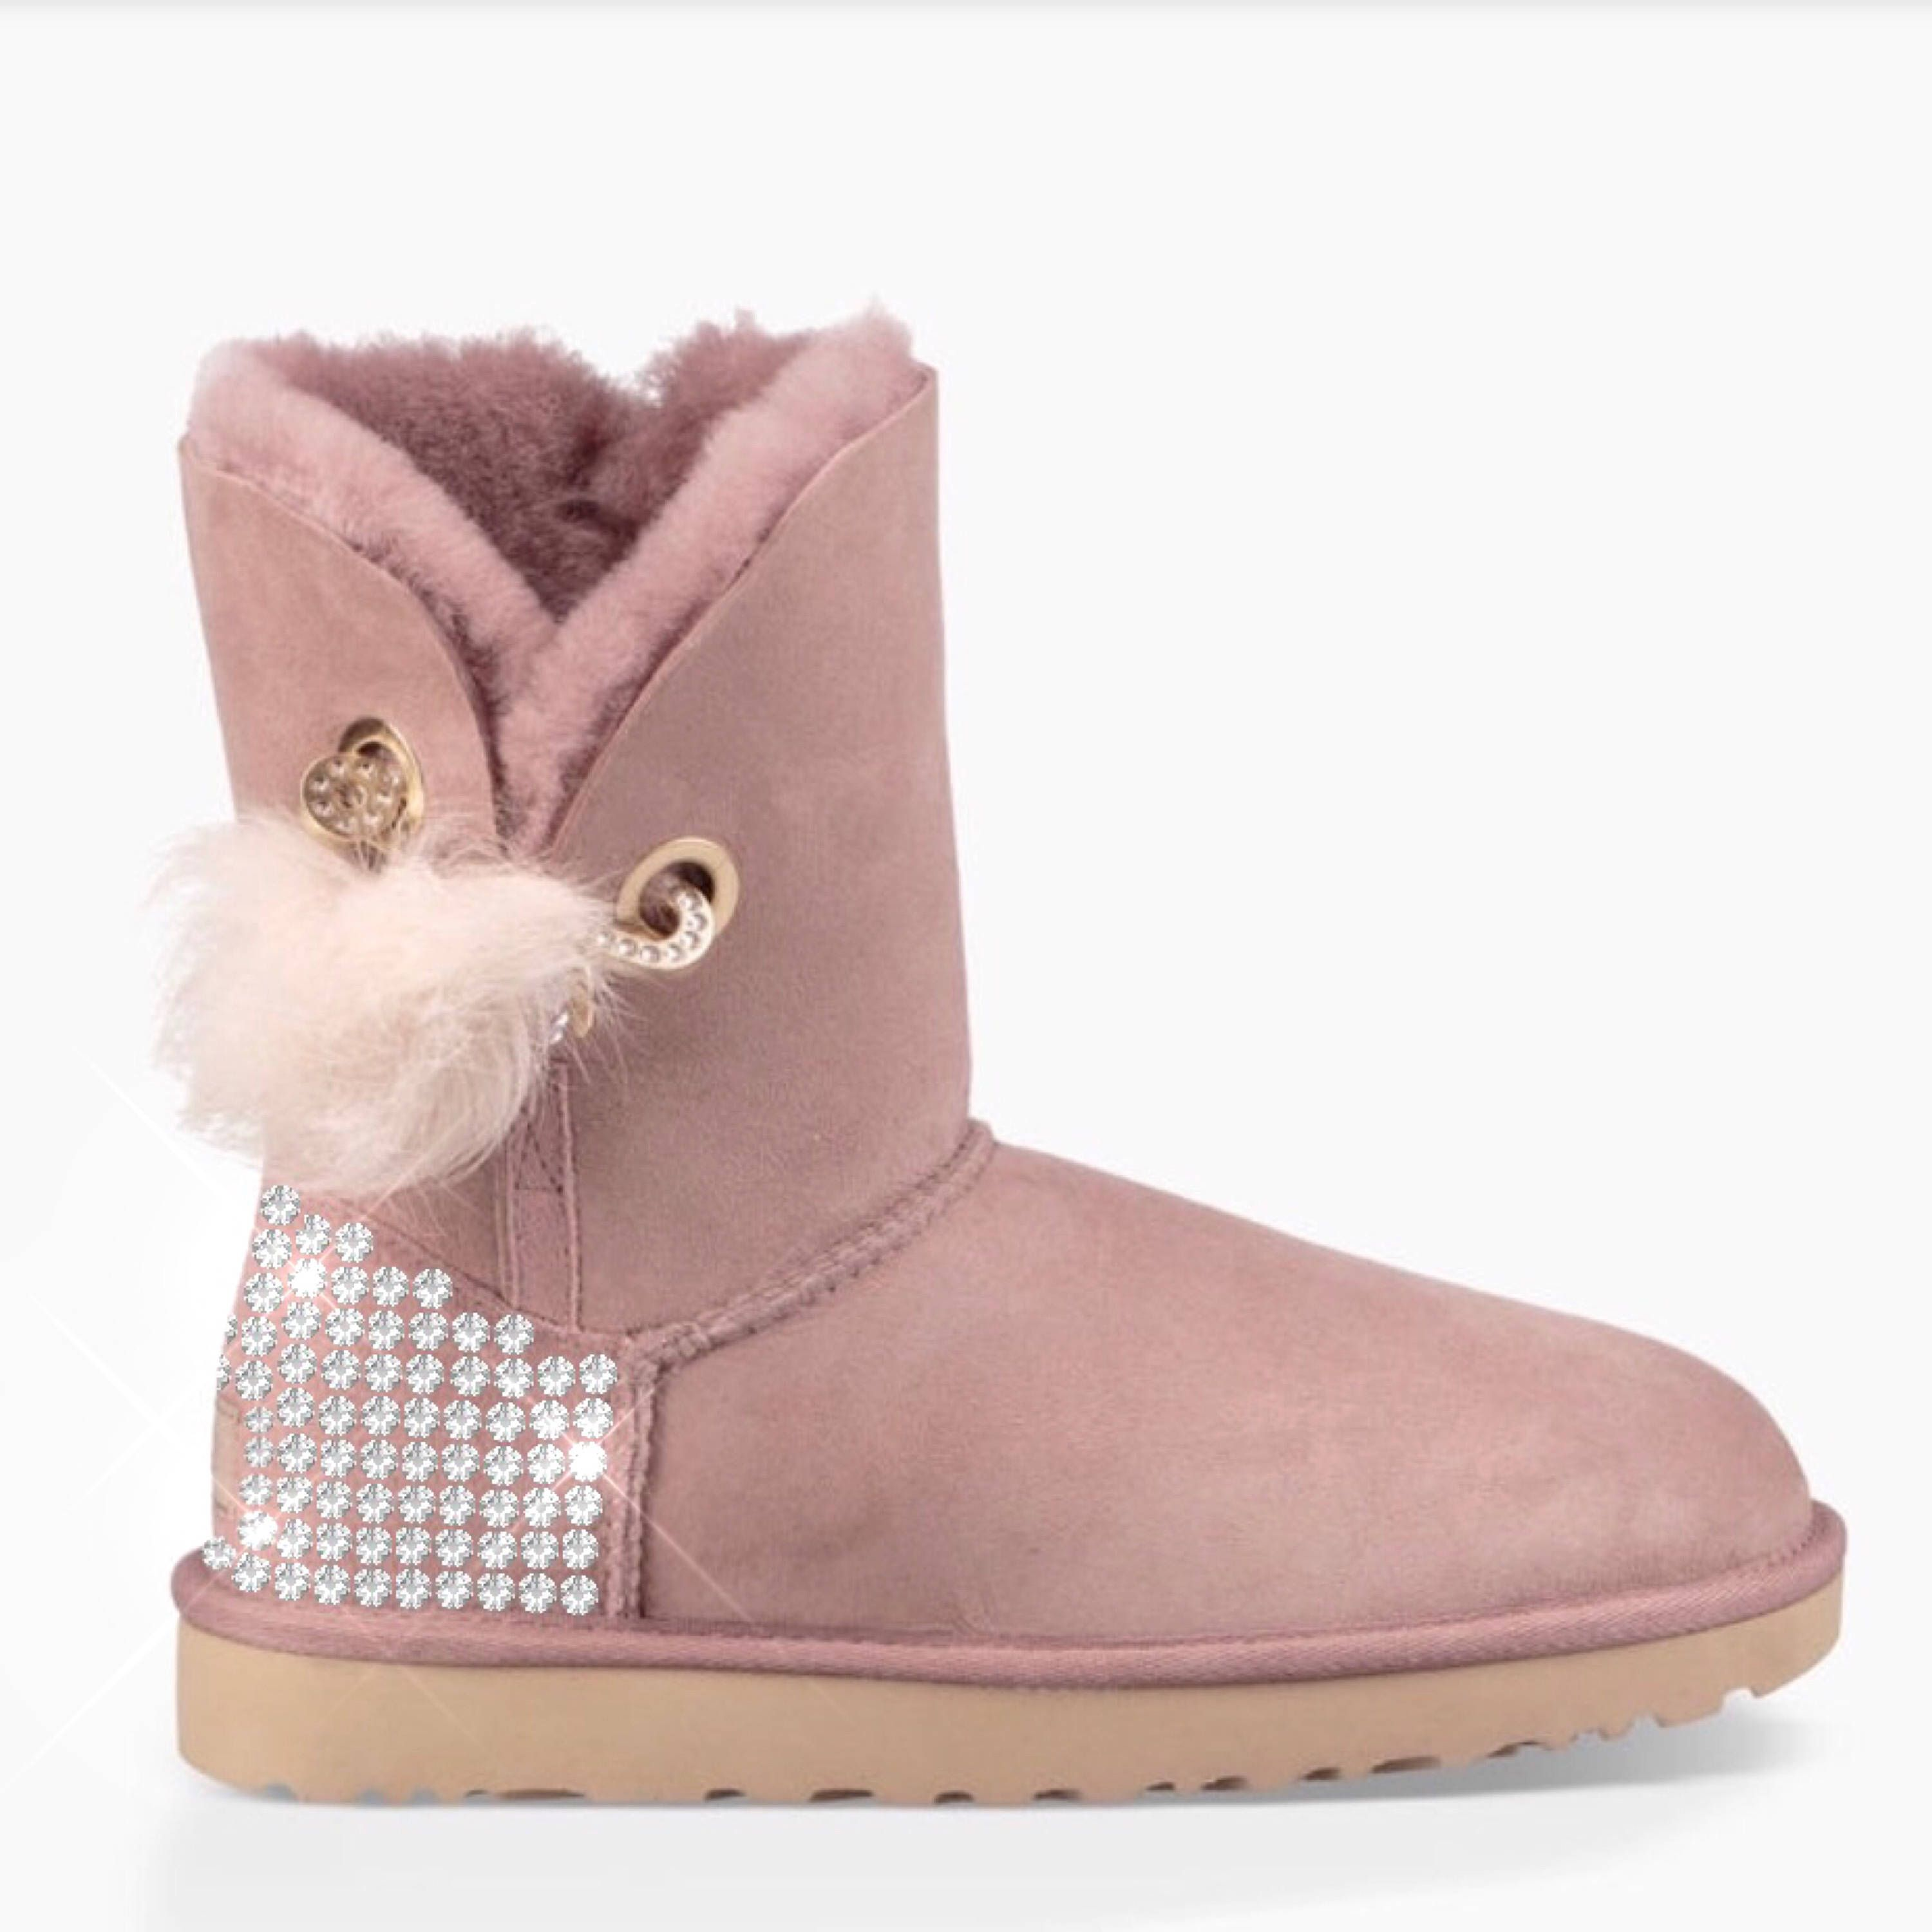 Bling UGG boots- crystal UGG boots- gray ugg boots - pink uggs boots-